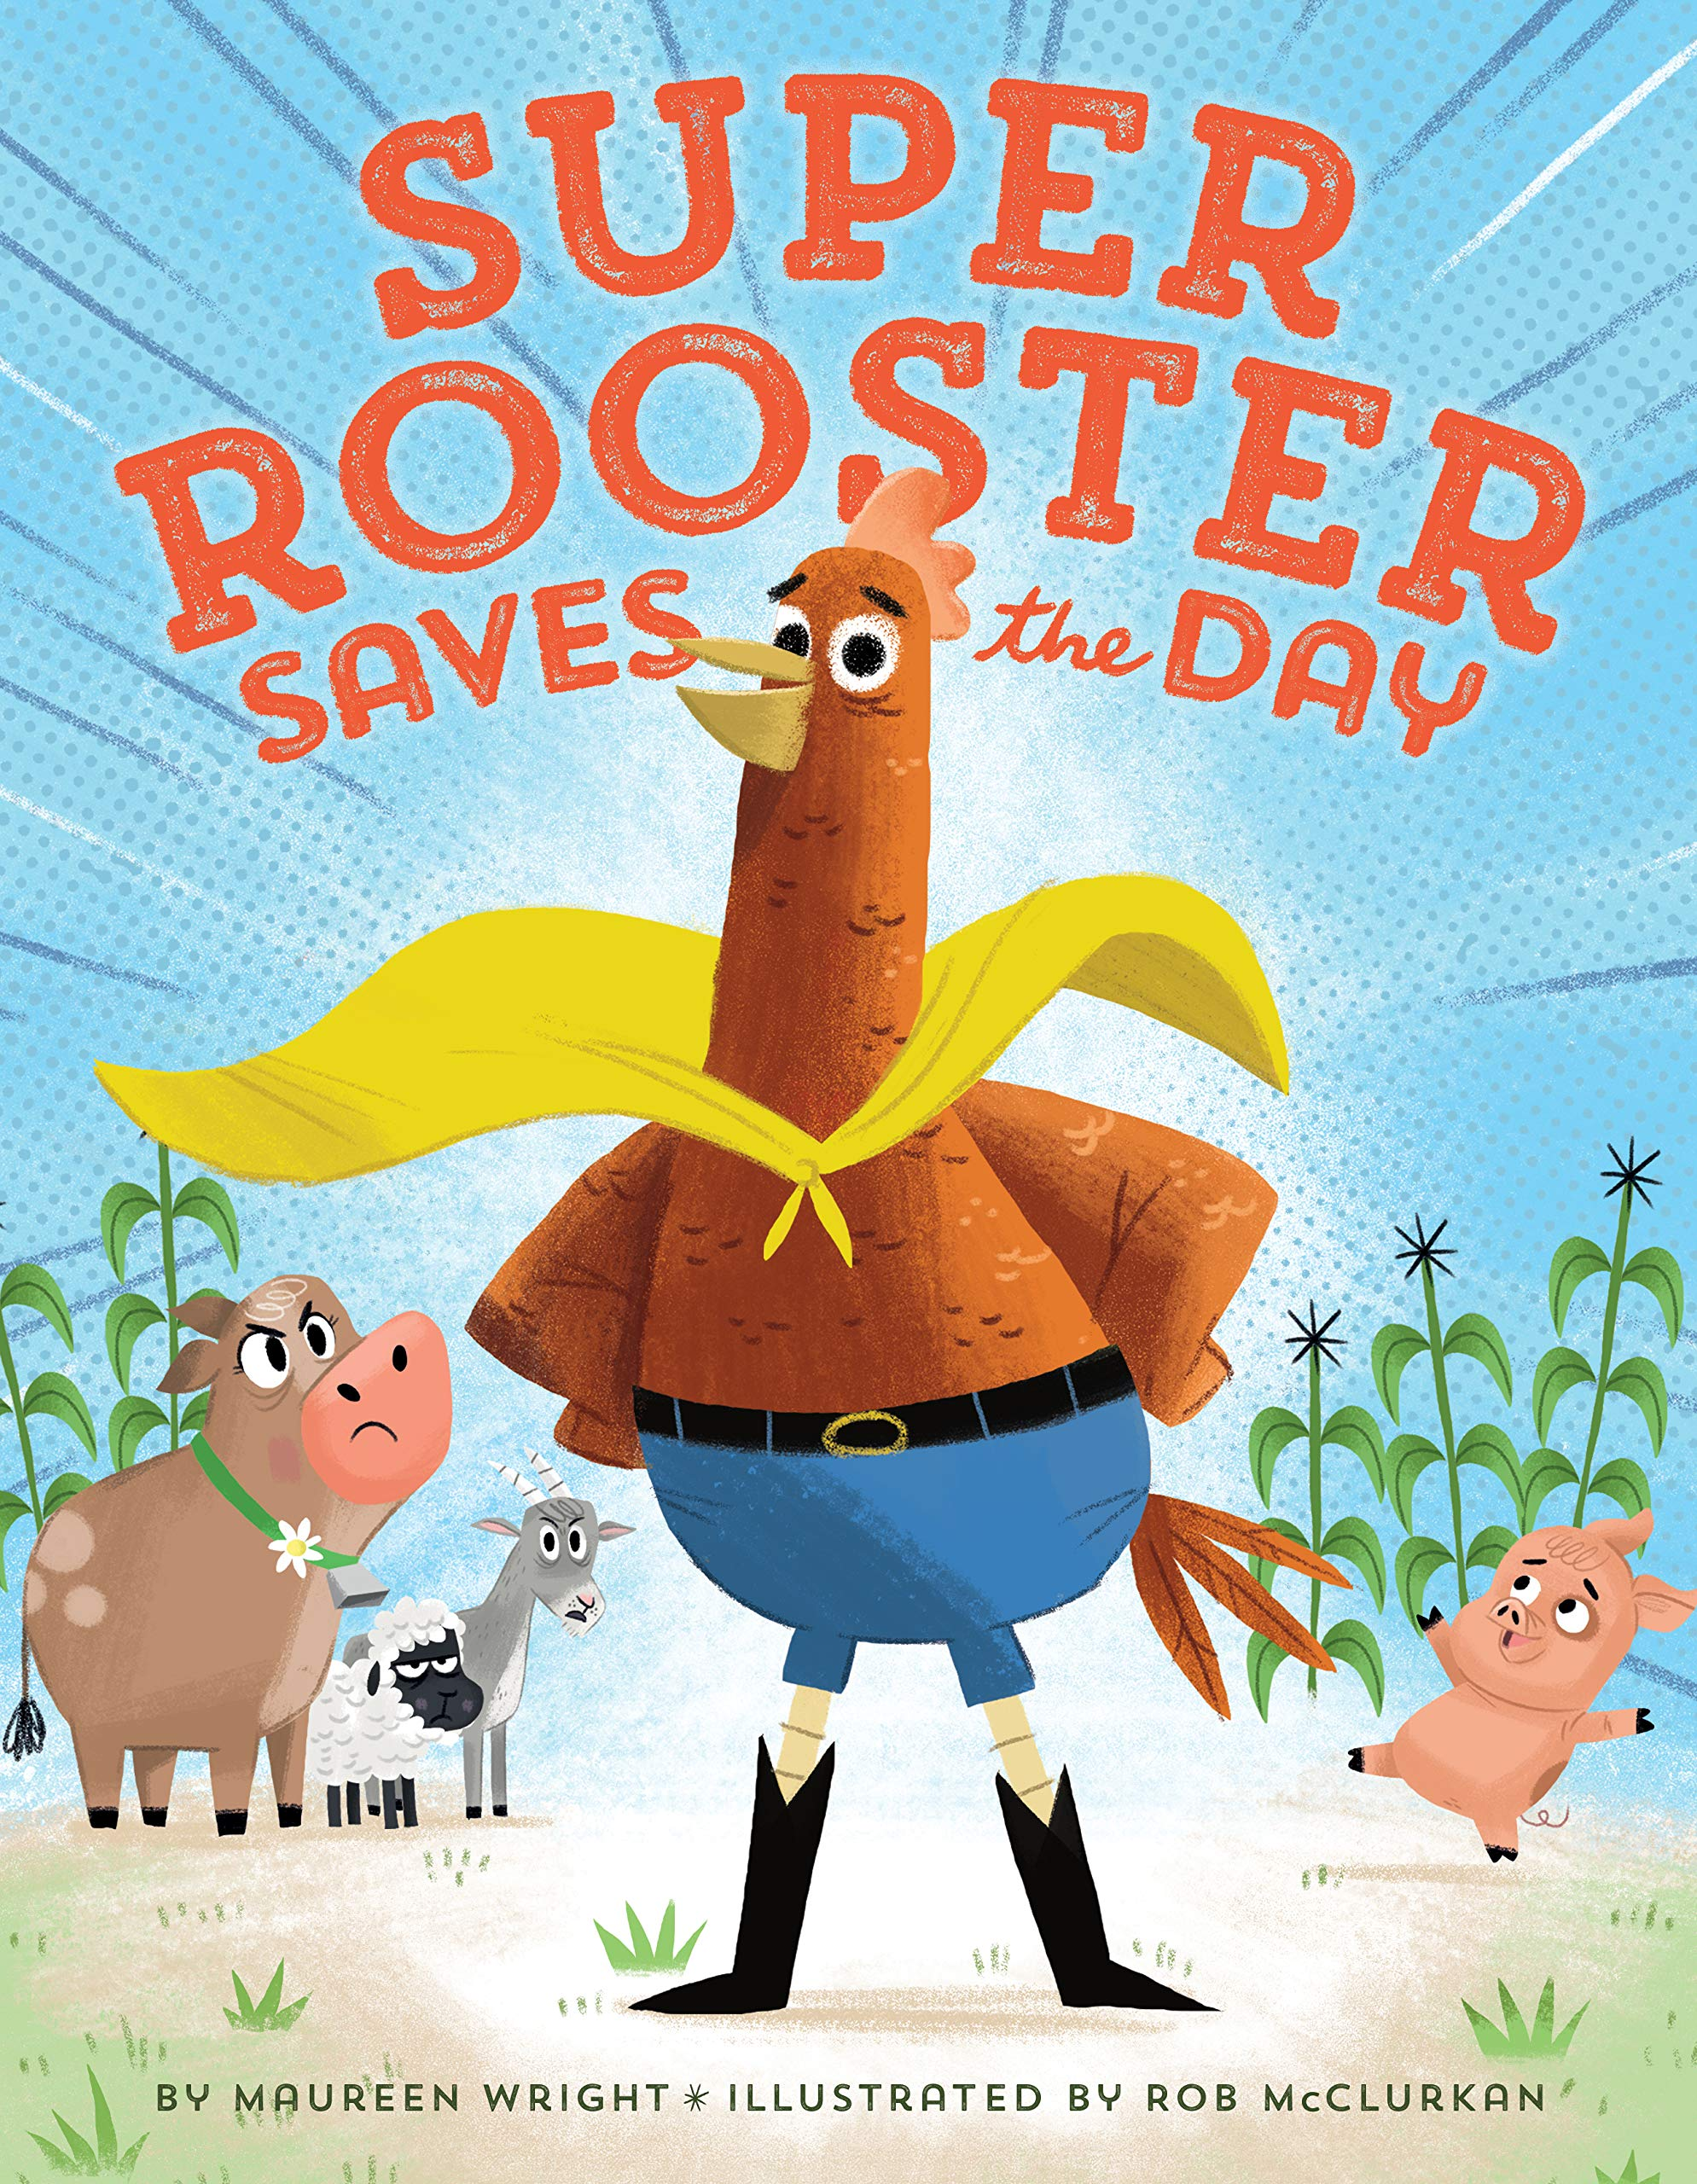 celebrate-picture-books-picture-book-review-super-rooster-saves-the-day-cover